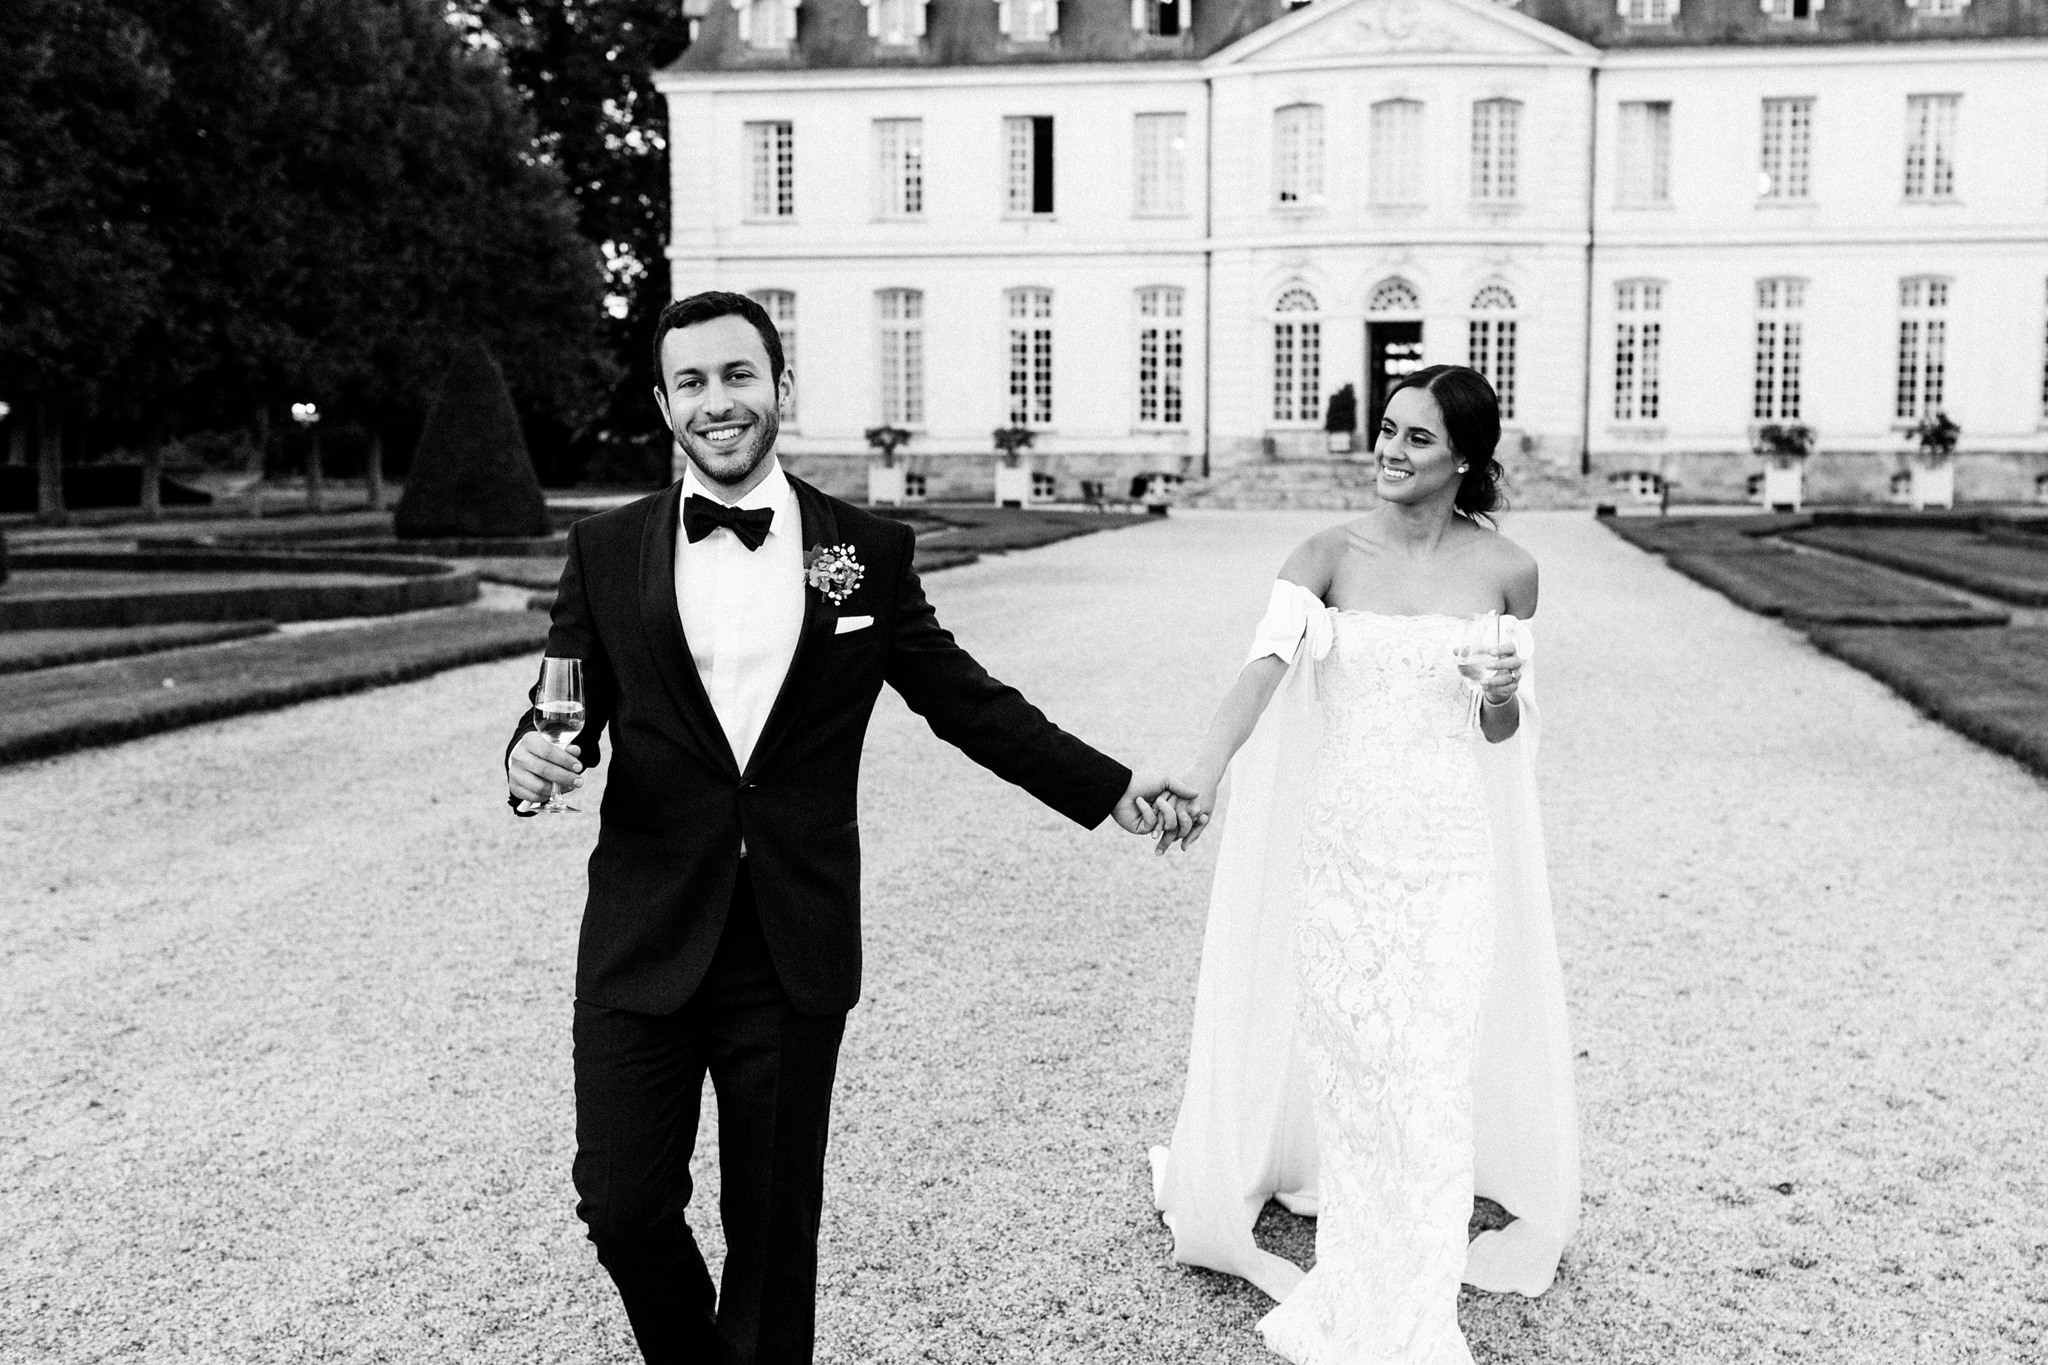 chateau-wedding-france-chanel-eric-as-seen-on-vogue-with-sarah-falugo-photographer_0150